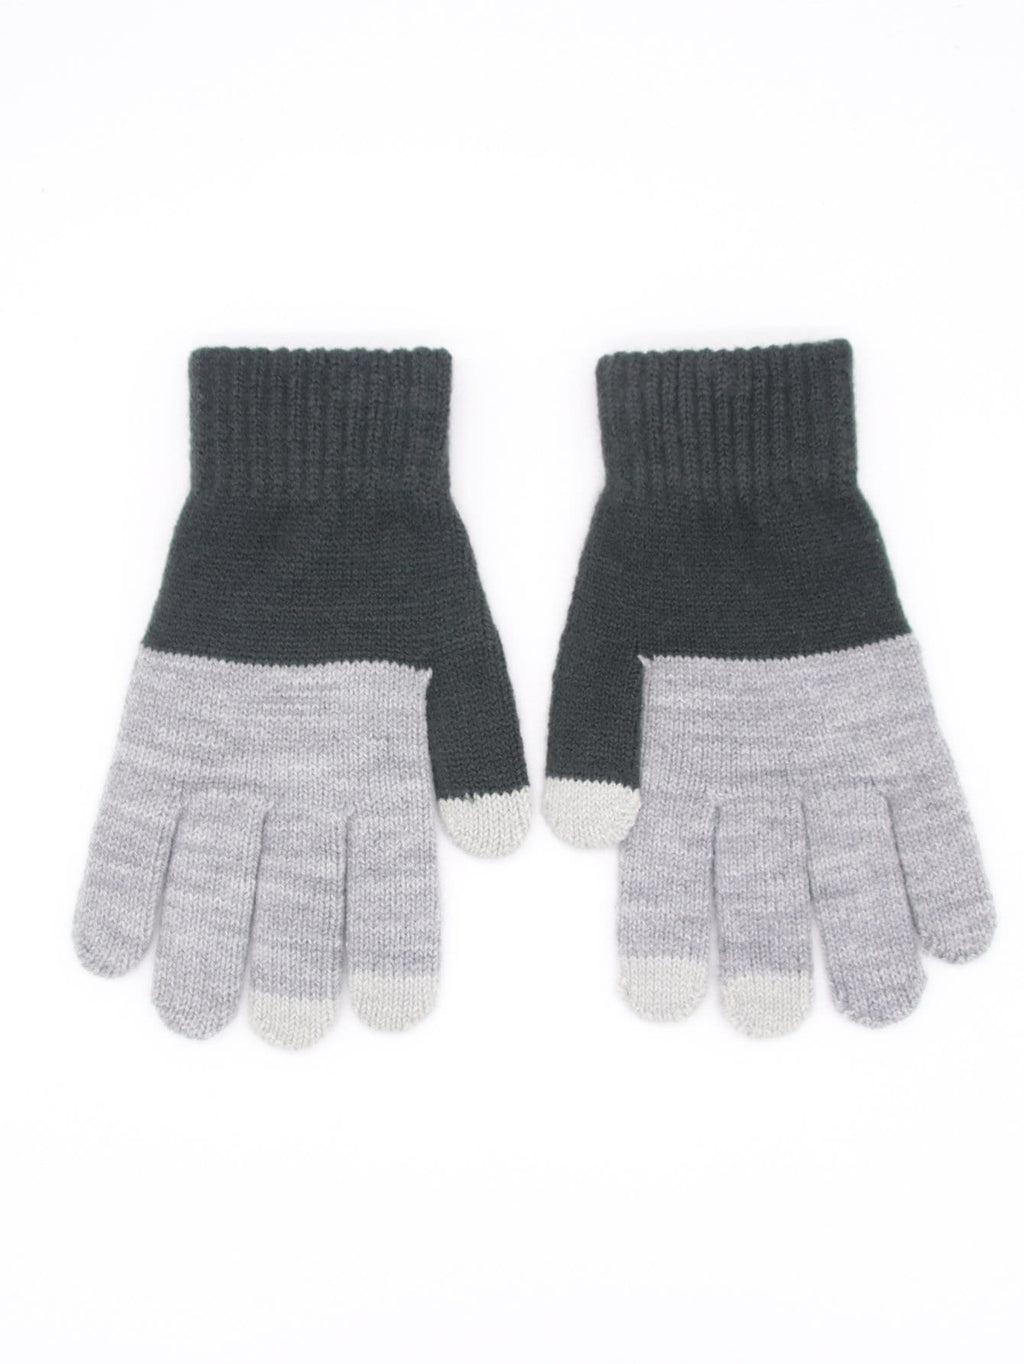 Men's Gloves - Two Tone Cable Knit Gloves